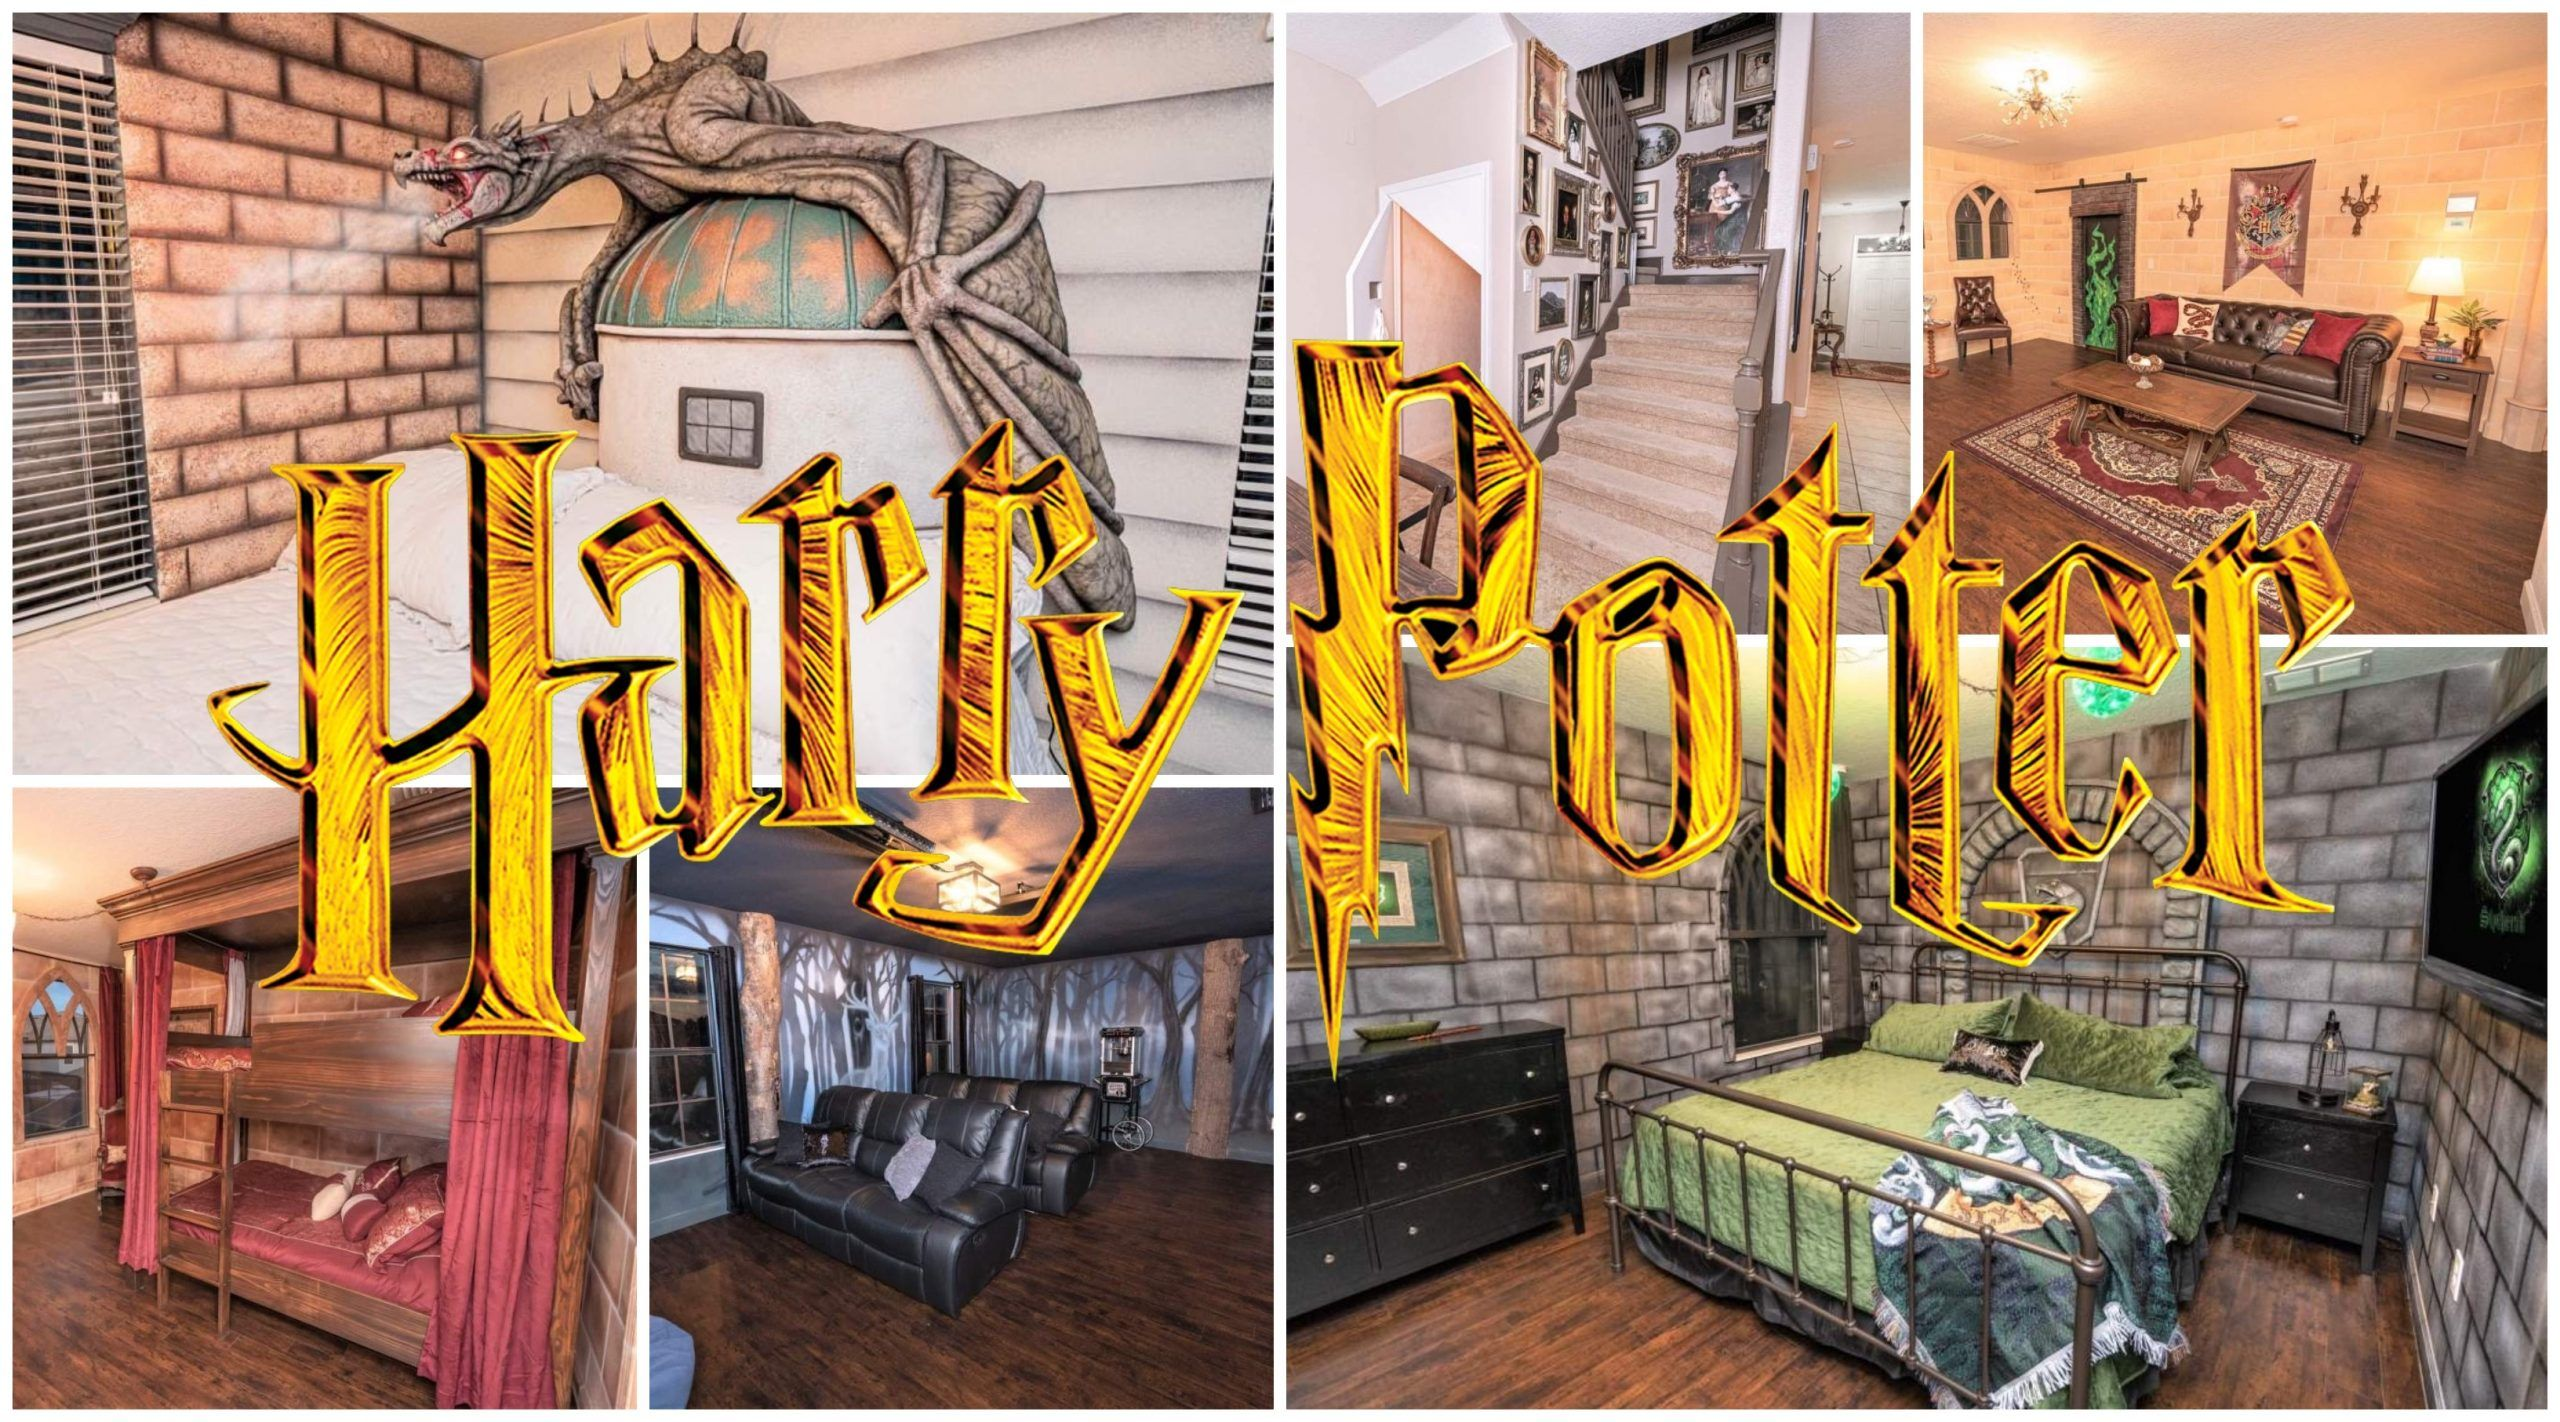 Book A Magical Stay In This Harry Potter Themed Airbnb Disney College At Home Movie Theater Disney World Parks